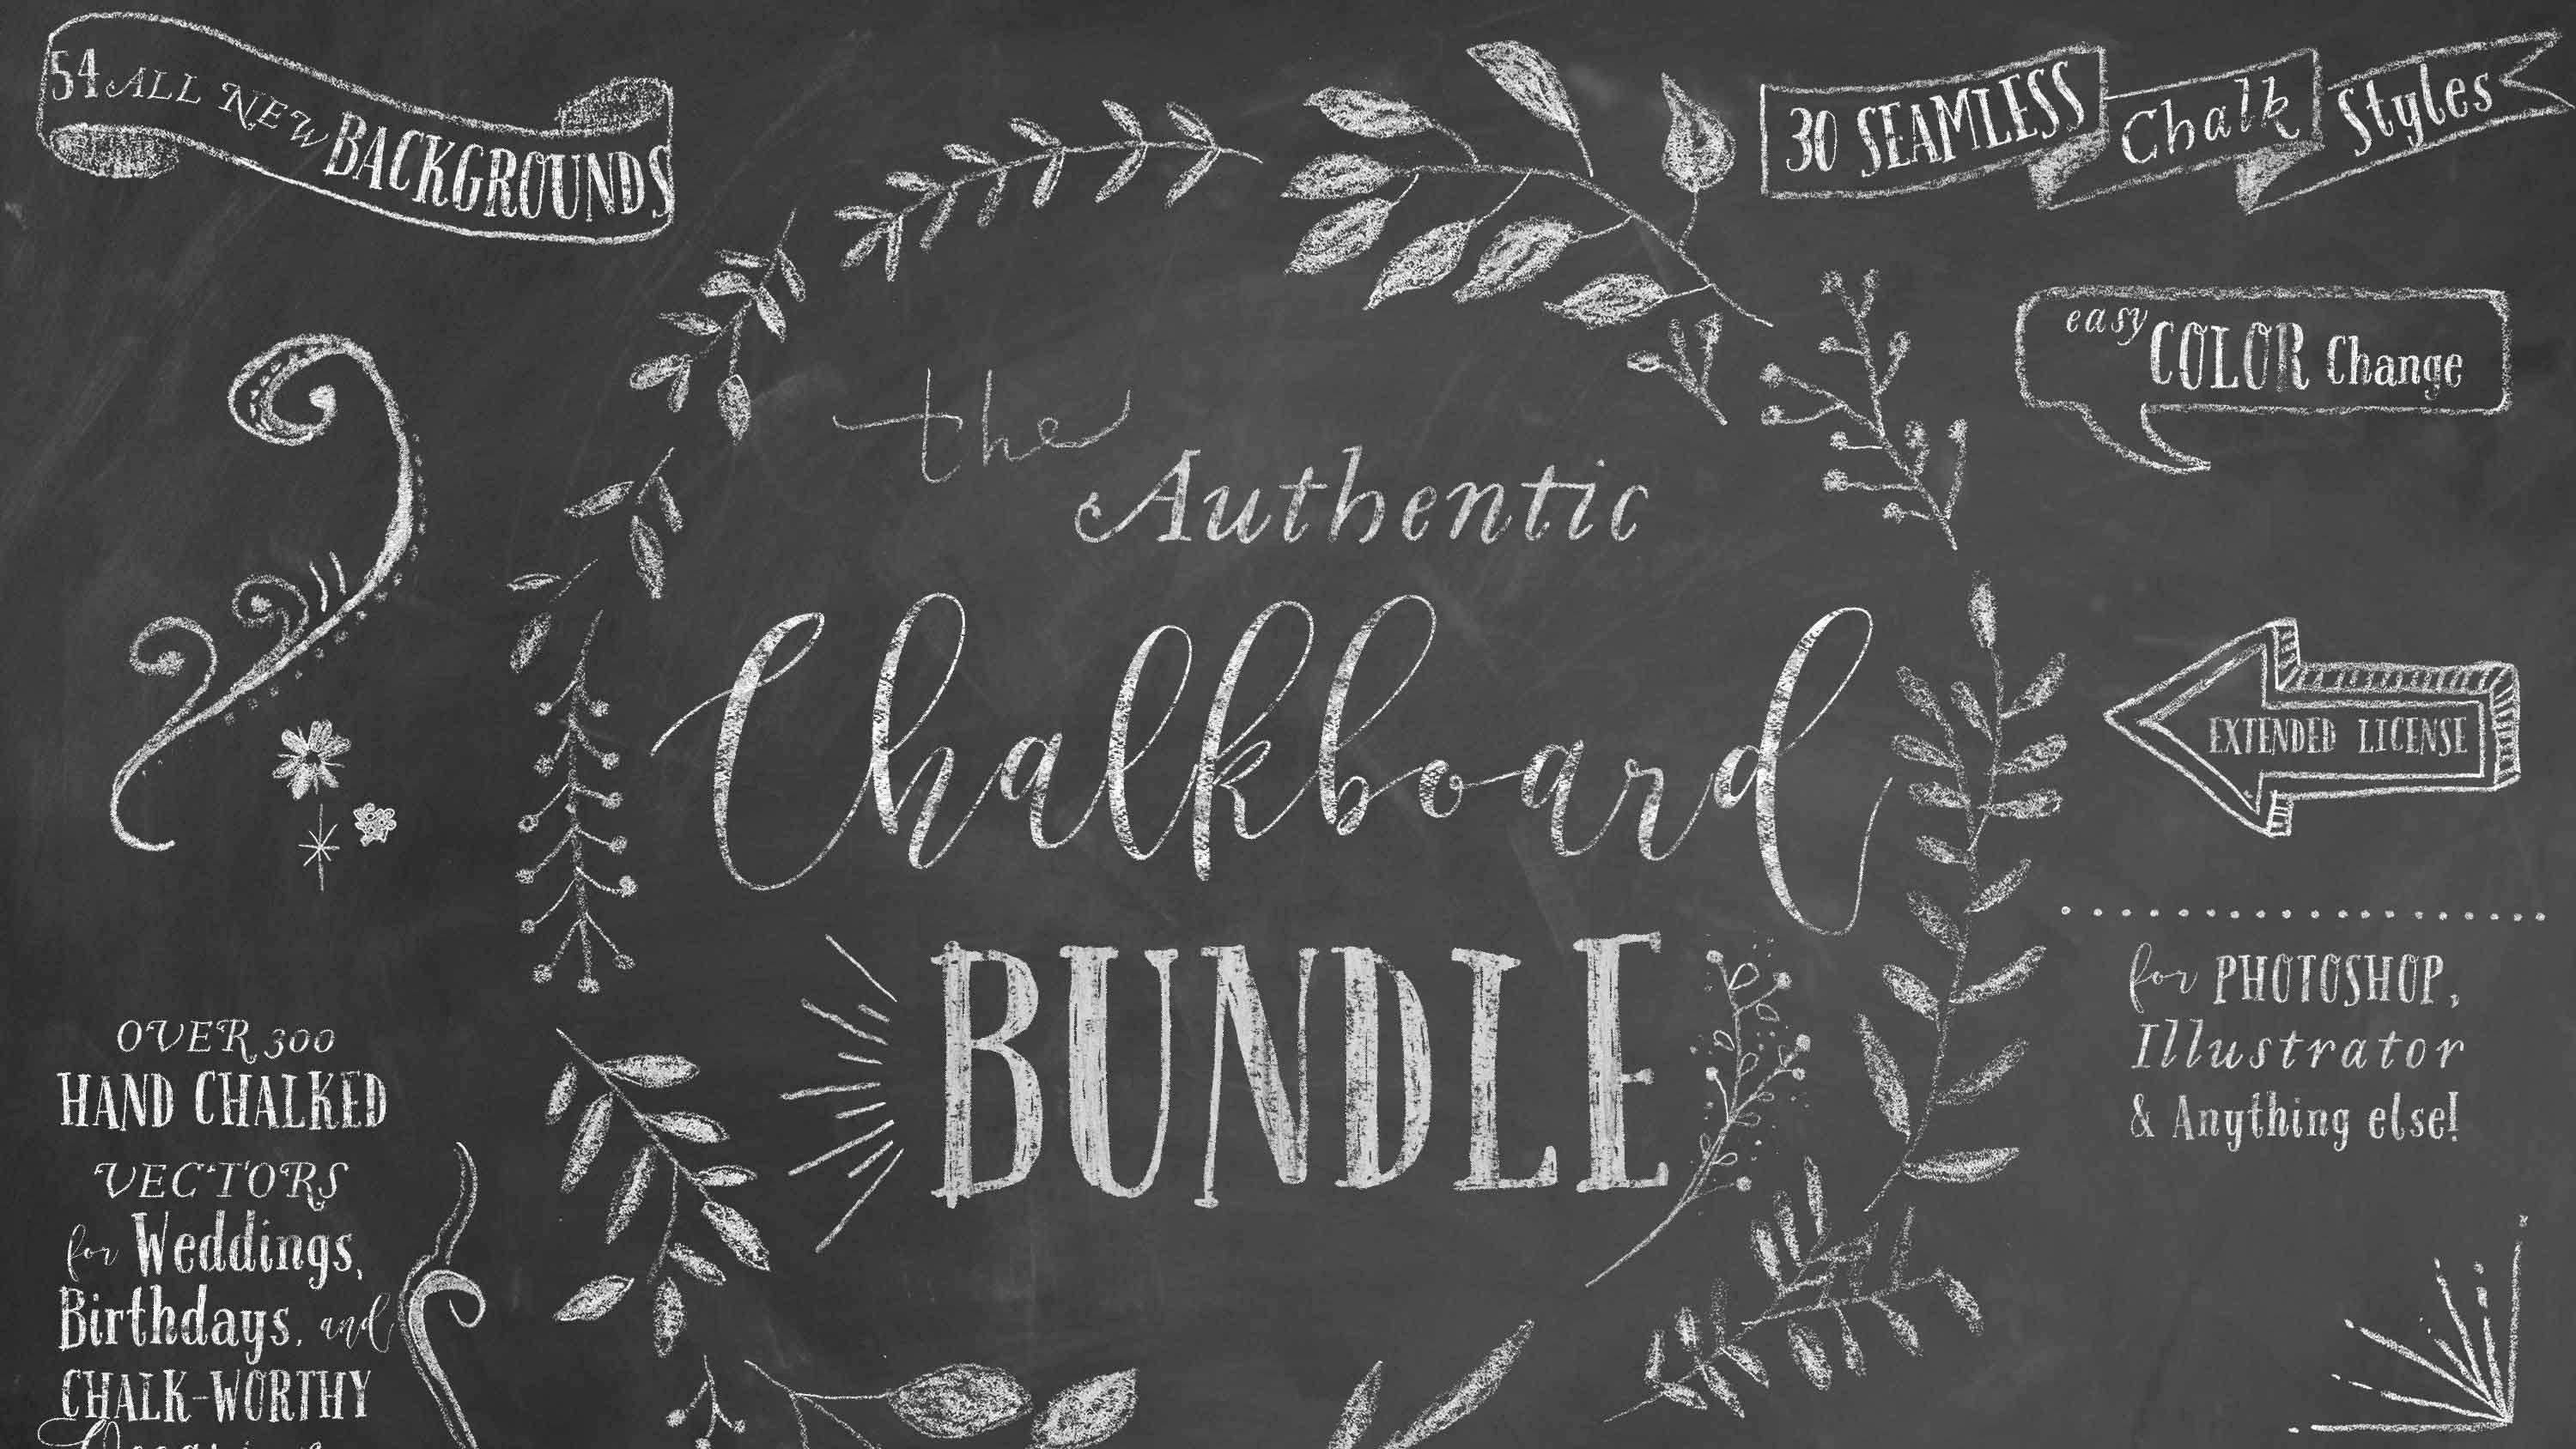 Best graphic design tools for May: chalkboard bunde